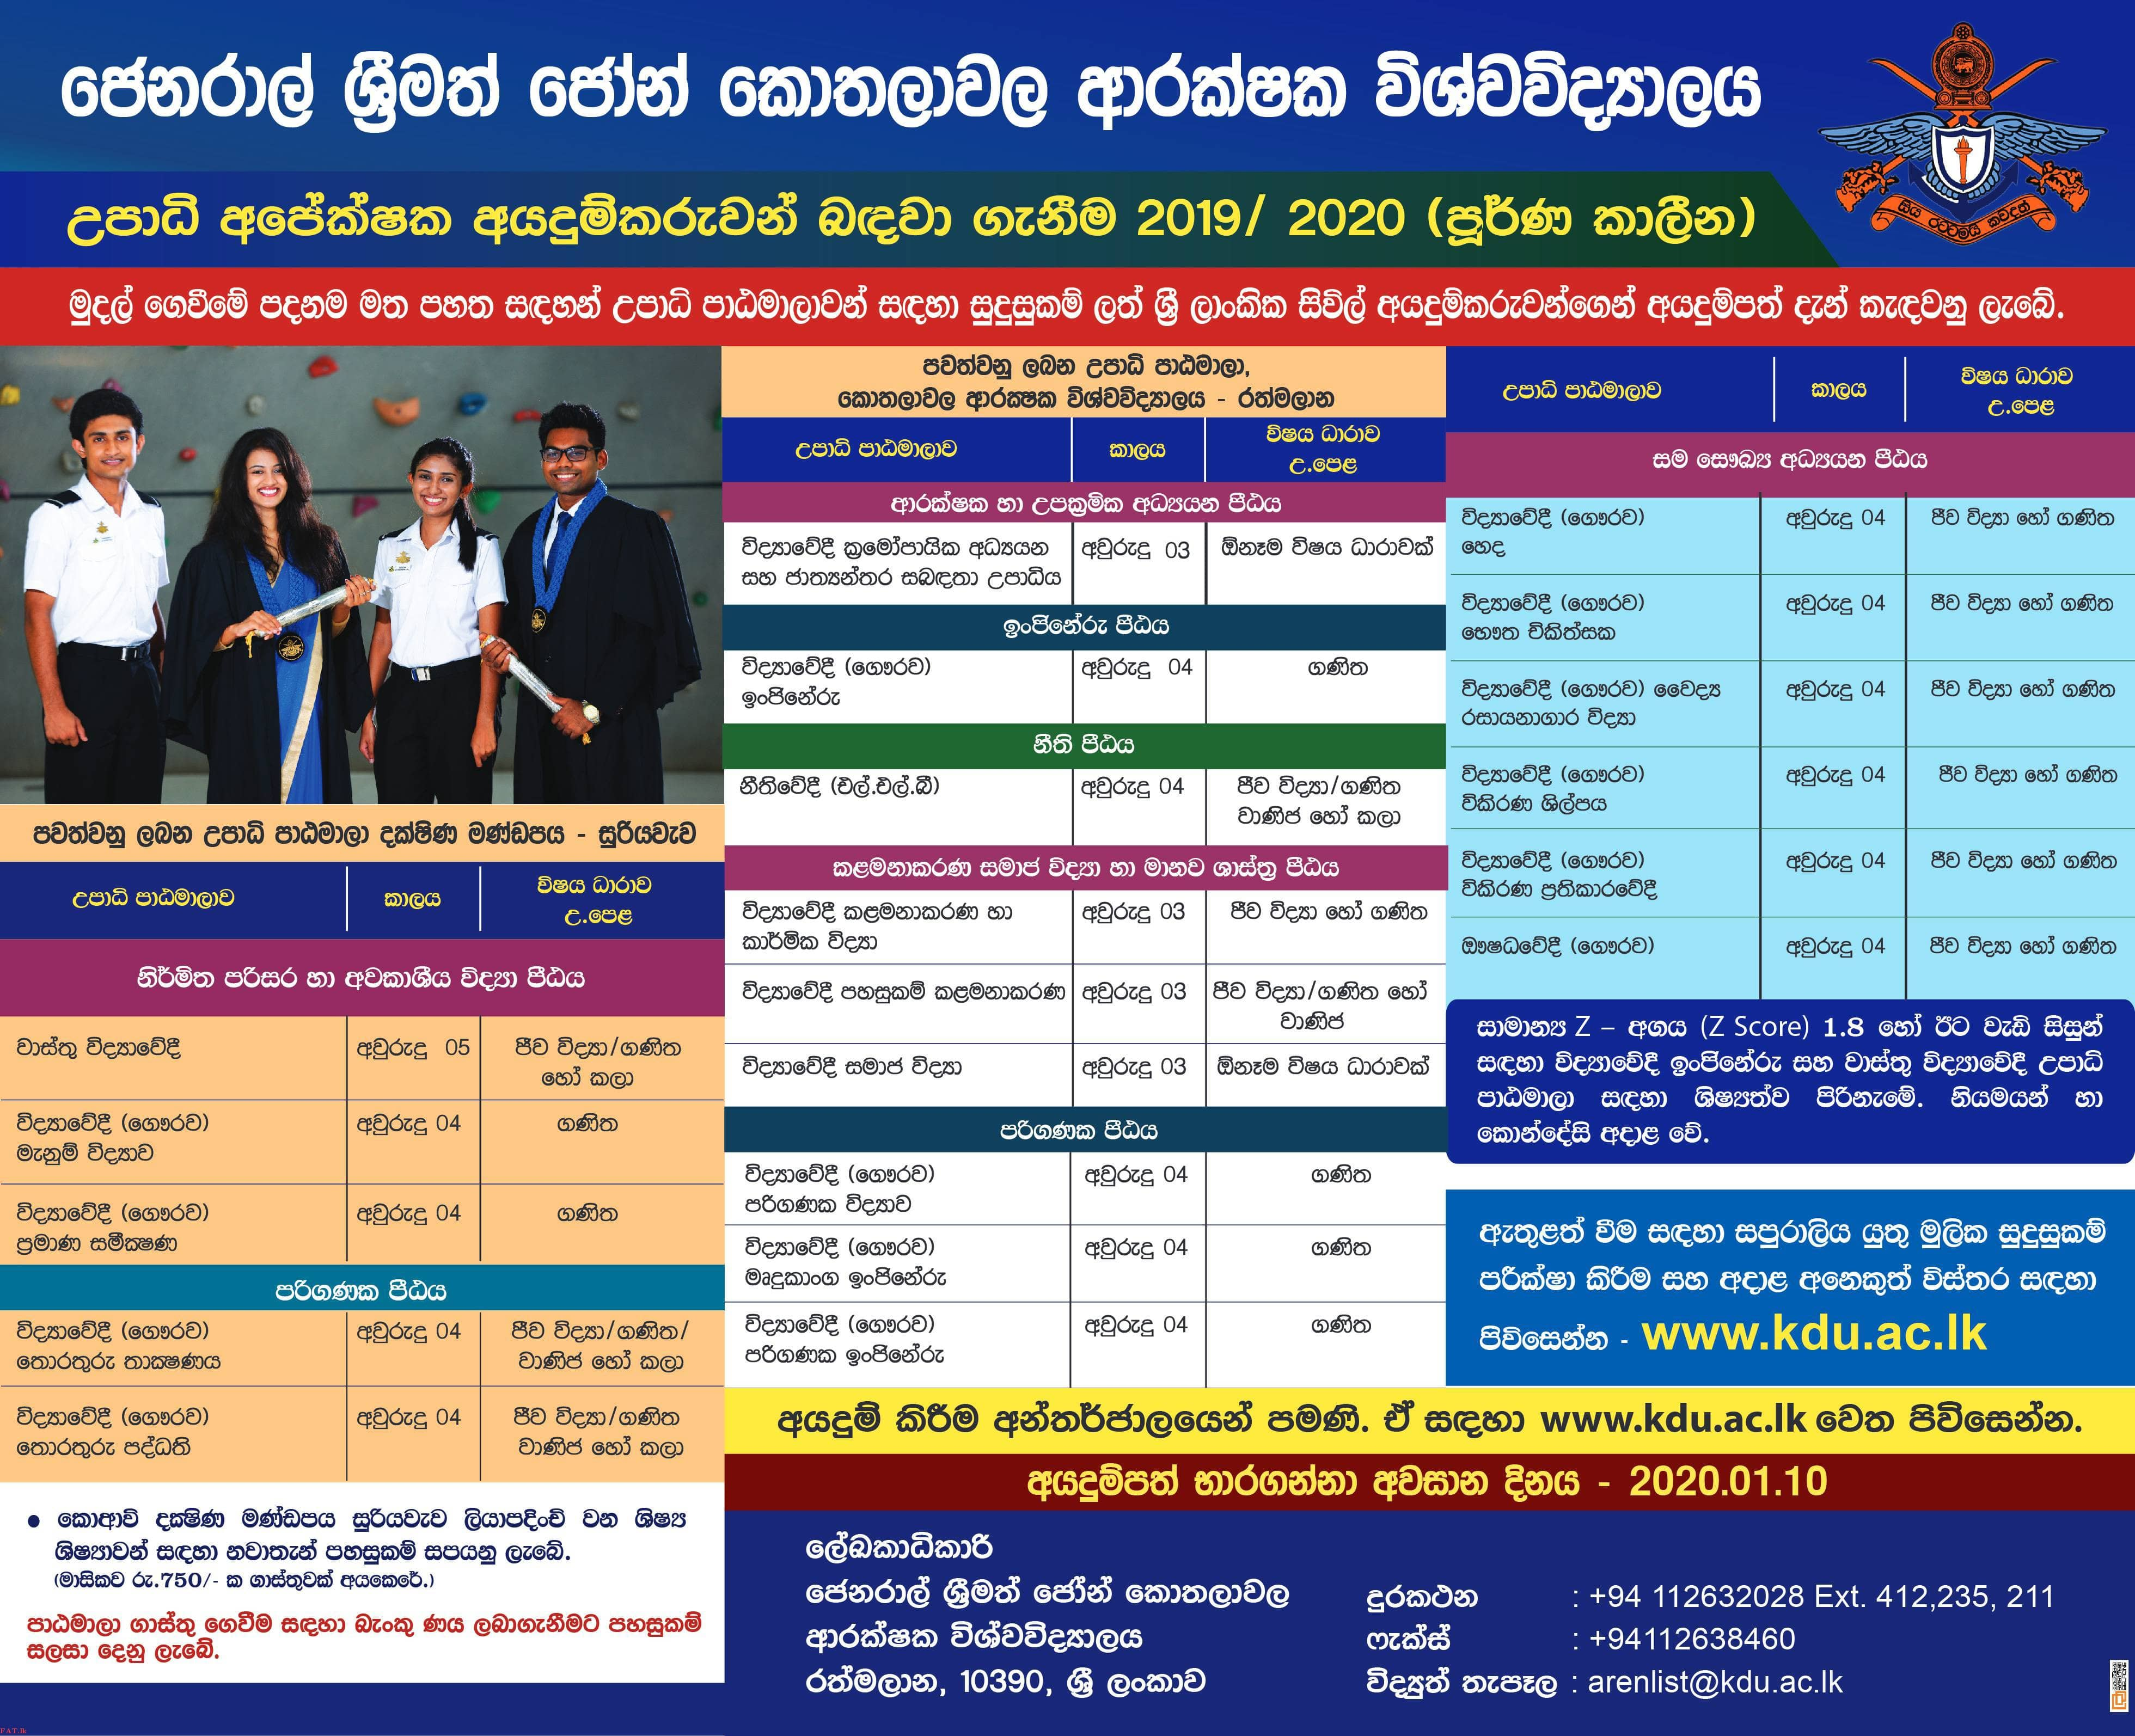 KDU Payment Basis Degree Programmes for Day Scholars, 2019/2020